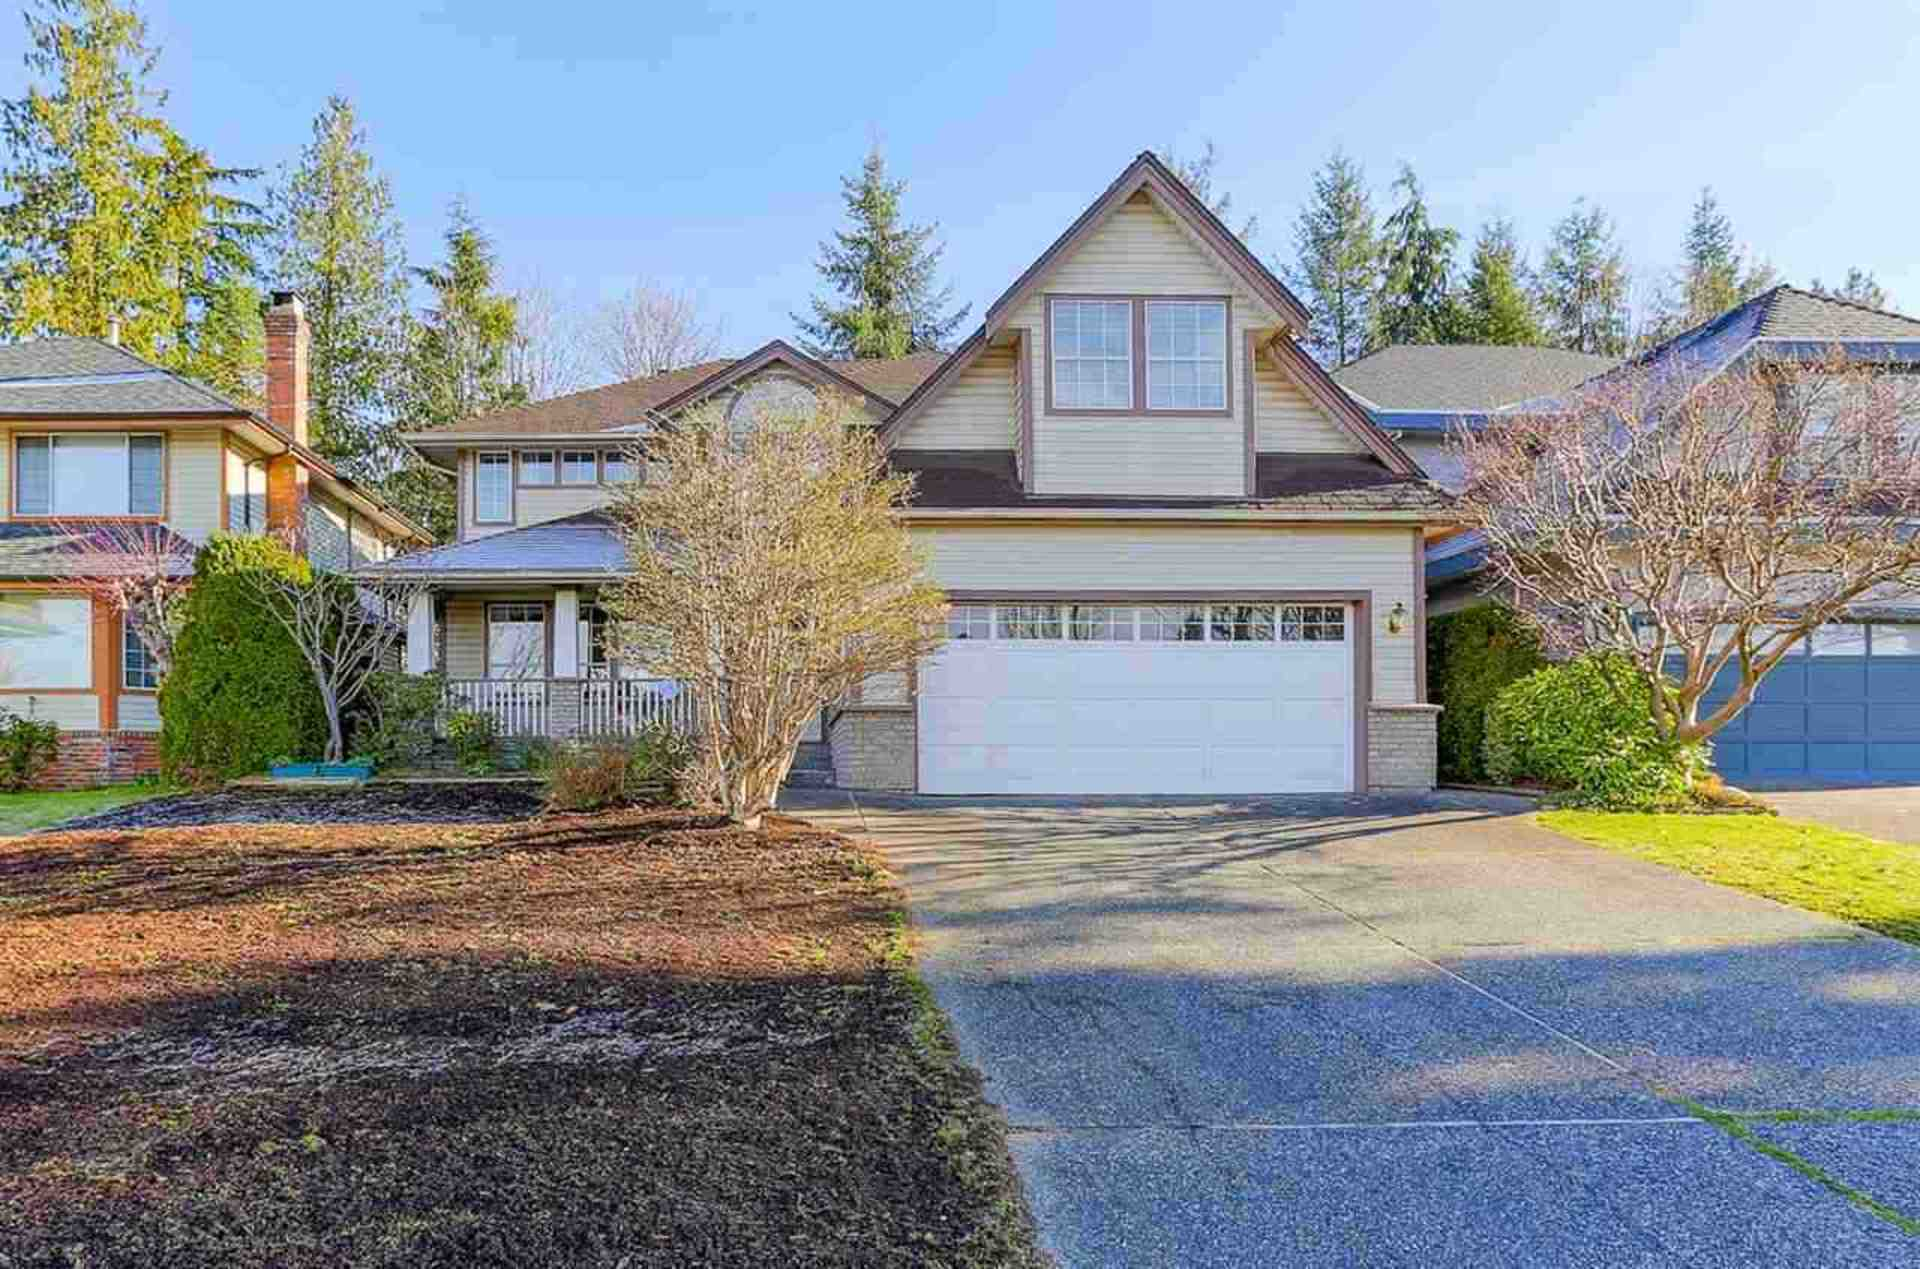 23516 Tamarack Lane, Albion, Maple Ridge